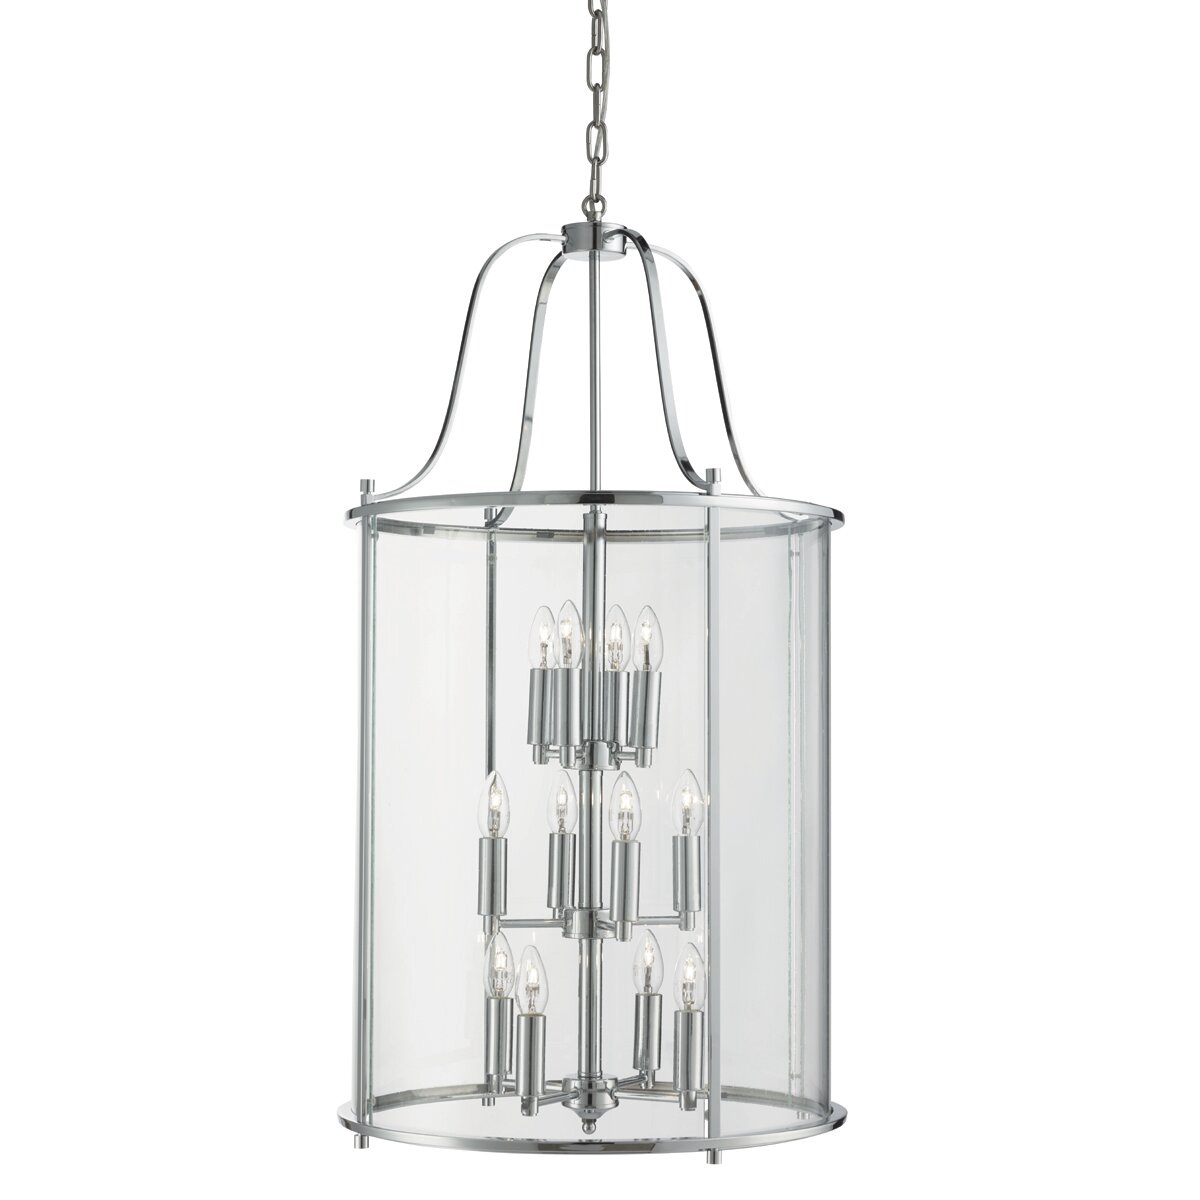 Victorian Foyer Lighting : Searchlight victorian lanterns light foyer pendant